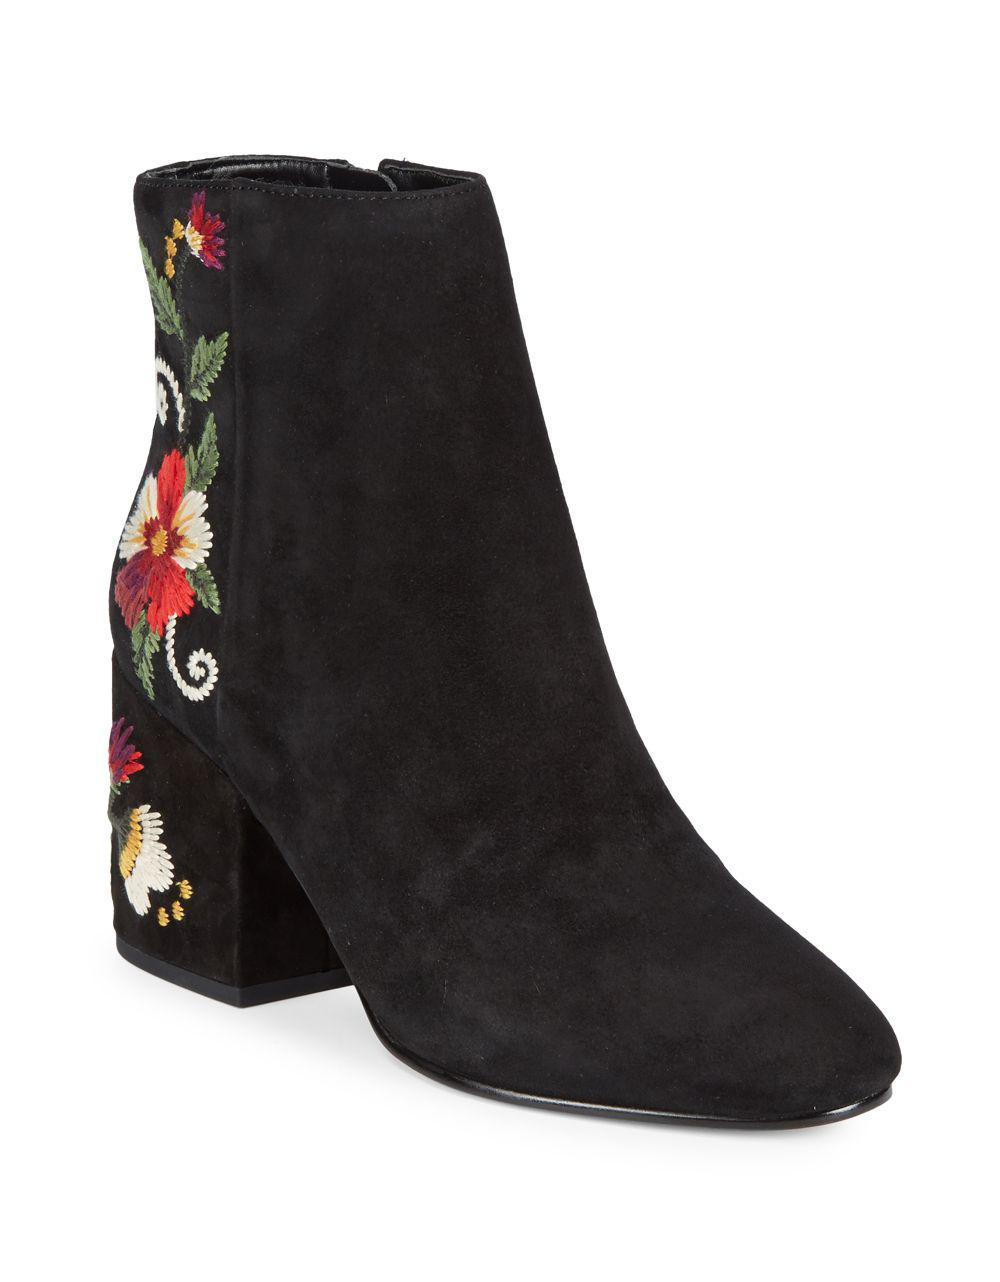 0299d9e95c0f0 Lyst - Sam Edelman Floral Suede Ankle Boots in Black